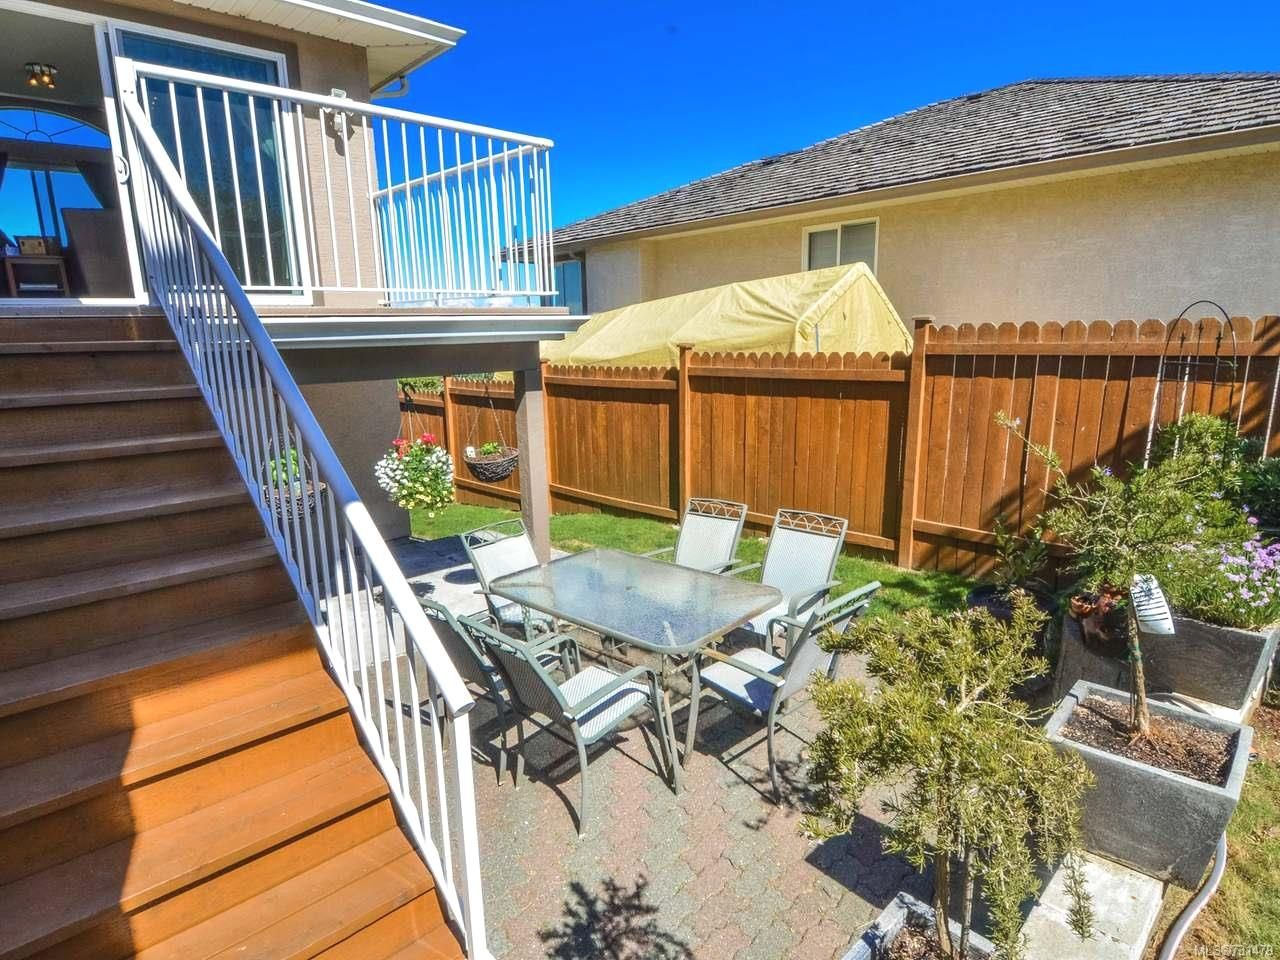 Photo 62: Photos: 753 Bowen Dr in CAMPBELL RIVER: CR Willow Point House for sale (Campbell River)  : MLS®# 731479